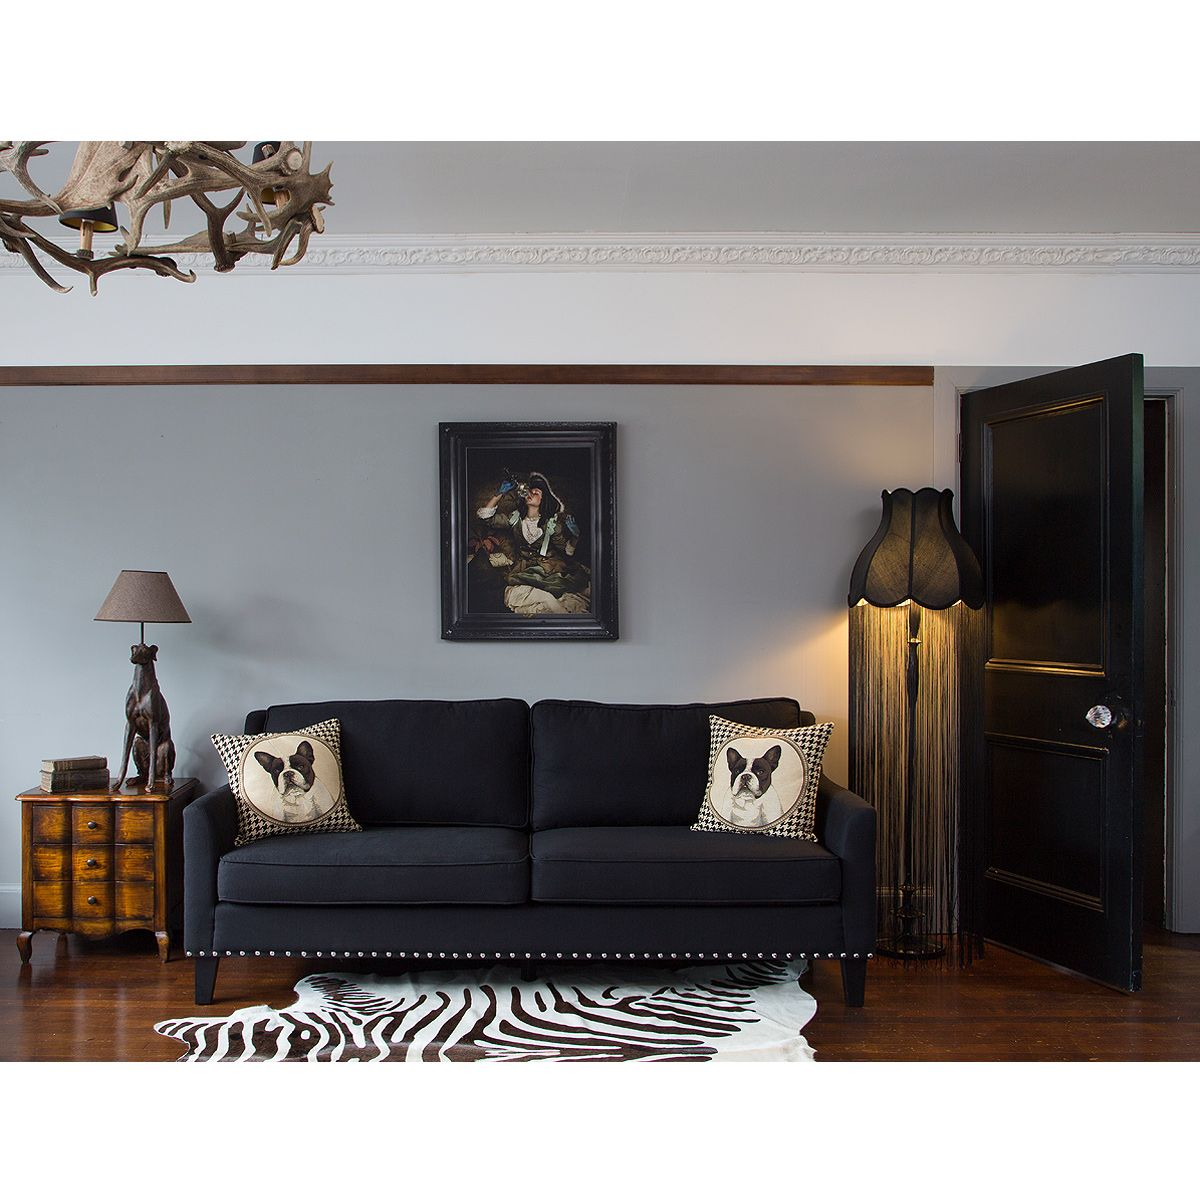 Bigwig Studded Black Sofa by The French Bedroom Company | Our French ...